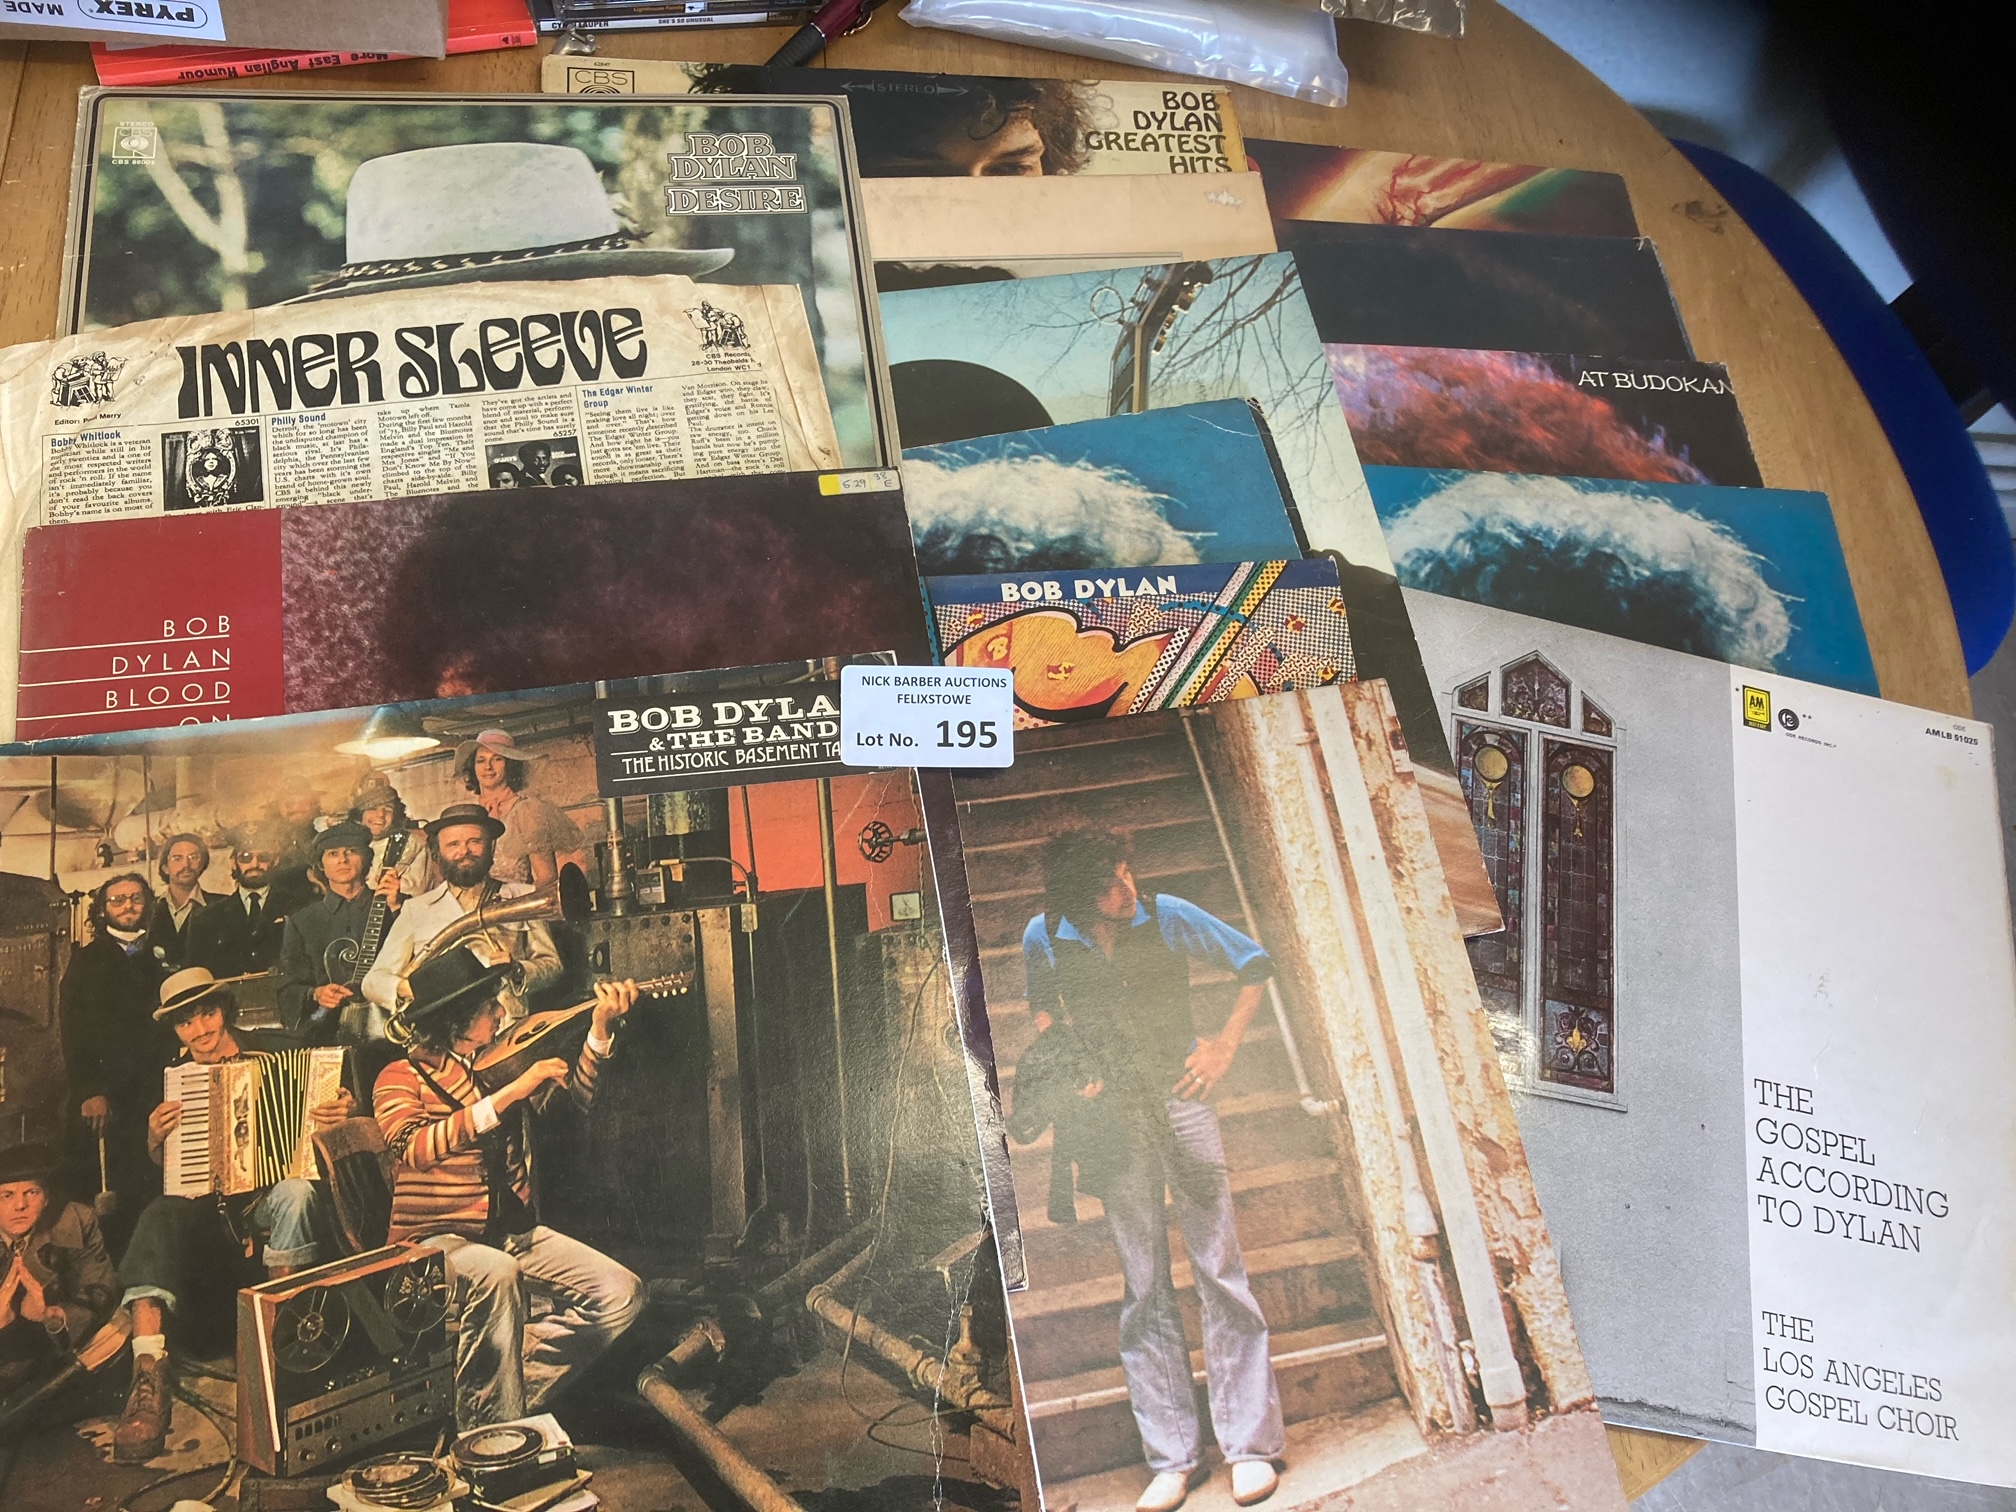 Records : BOB DYLAN albums (14) nearly all differe